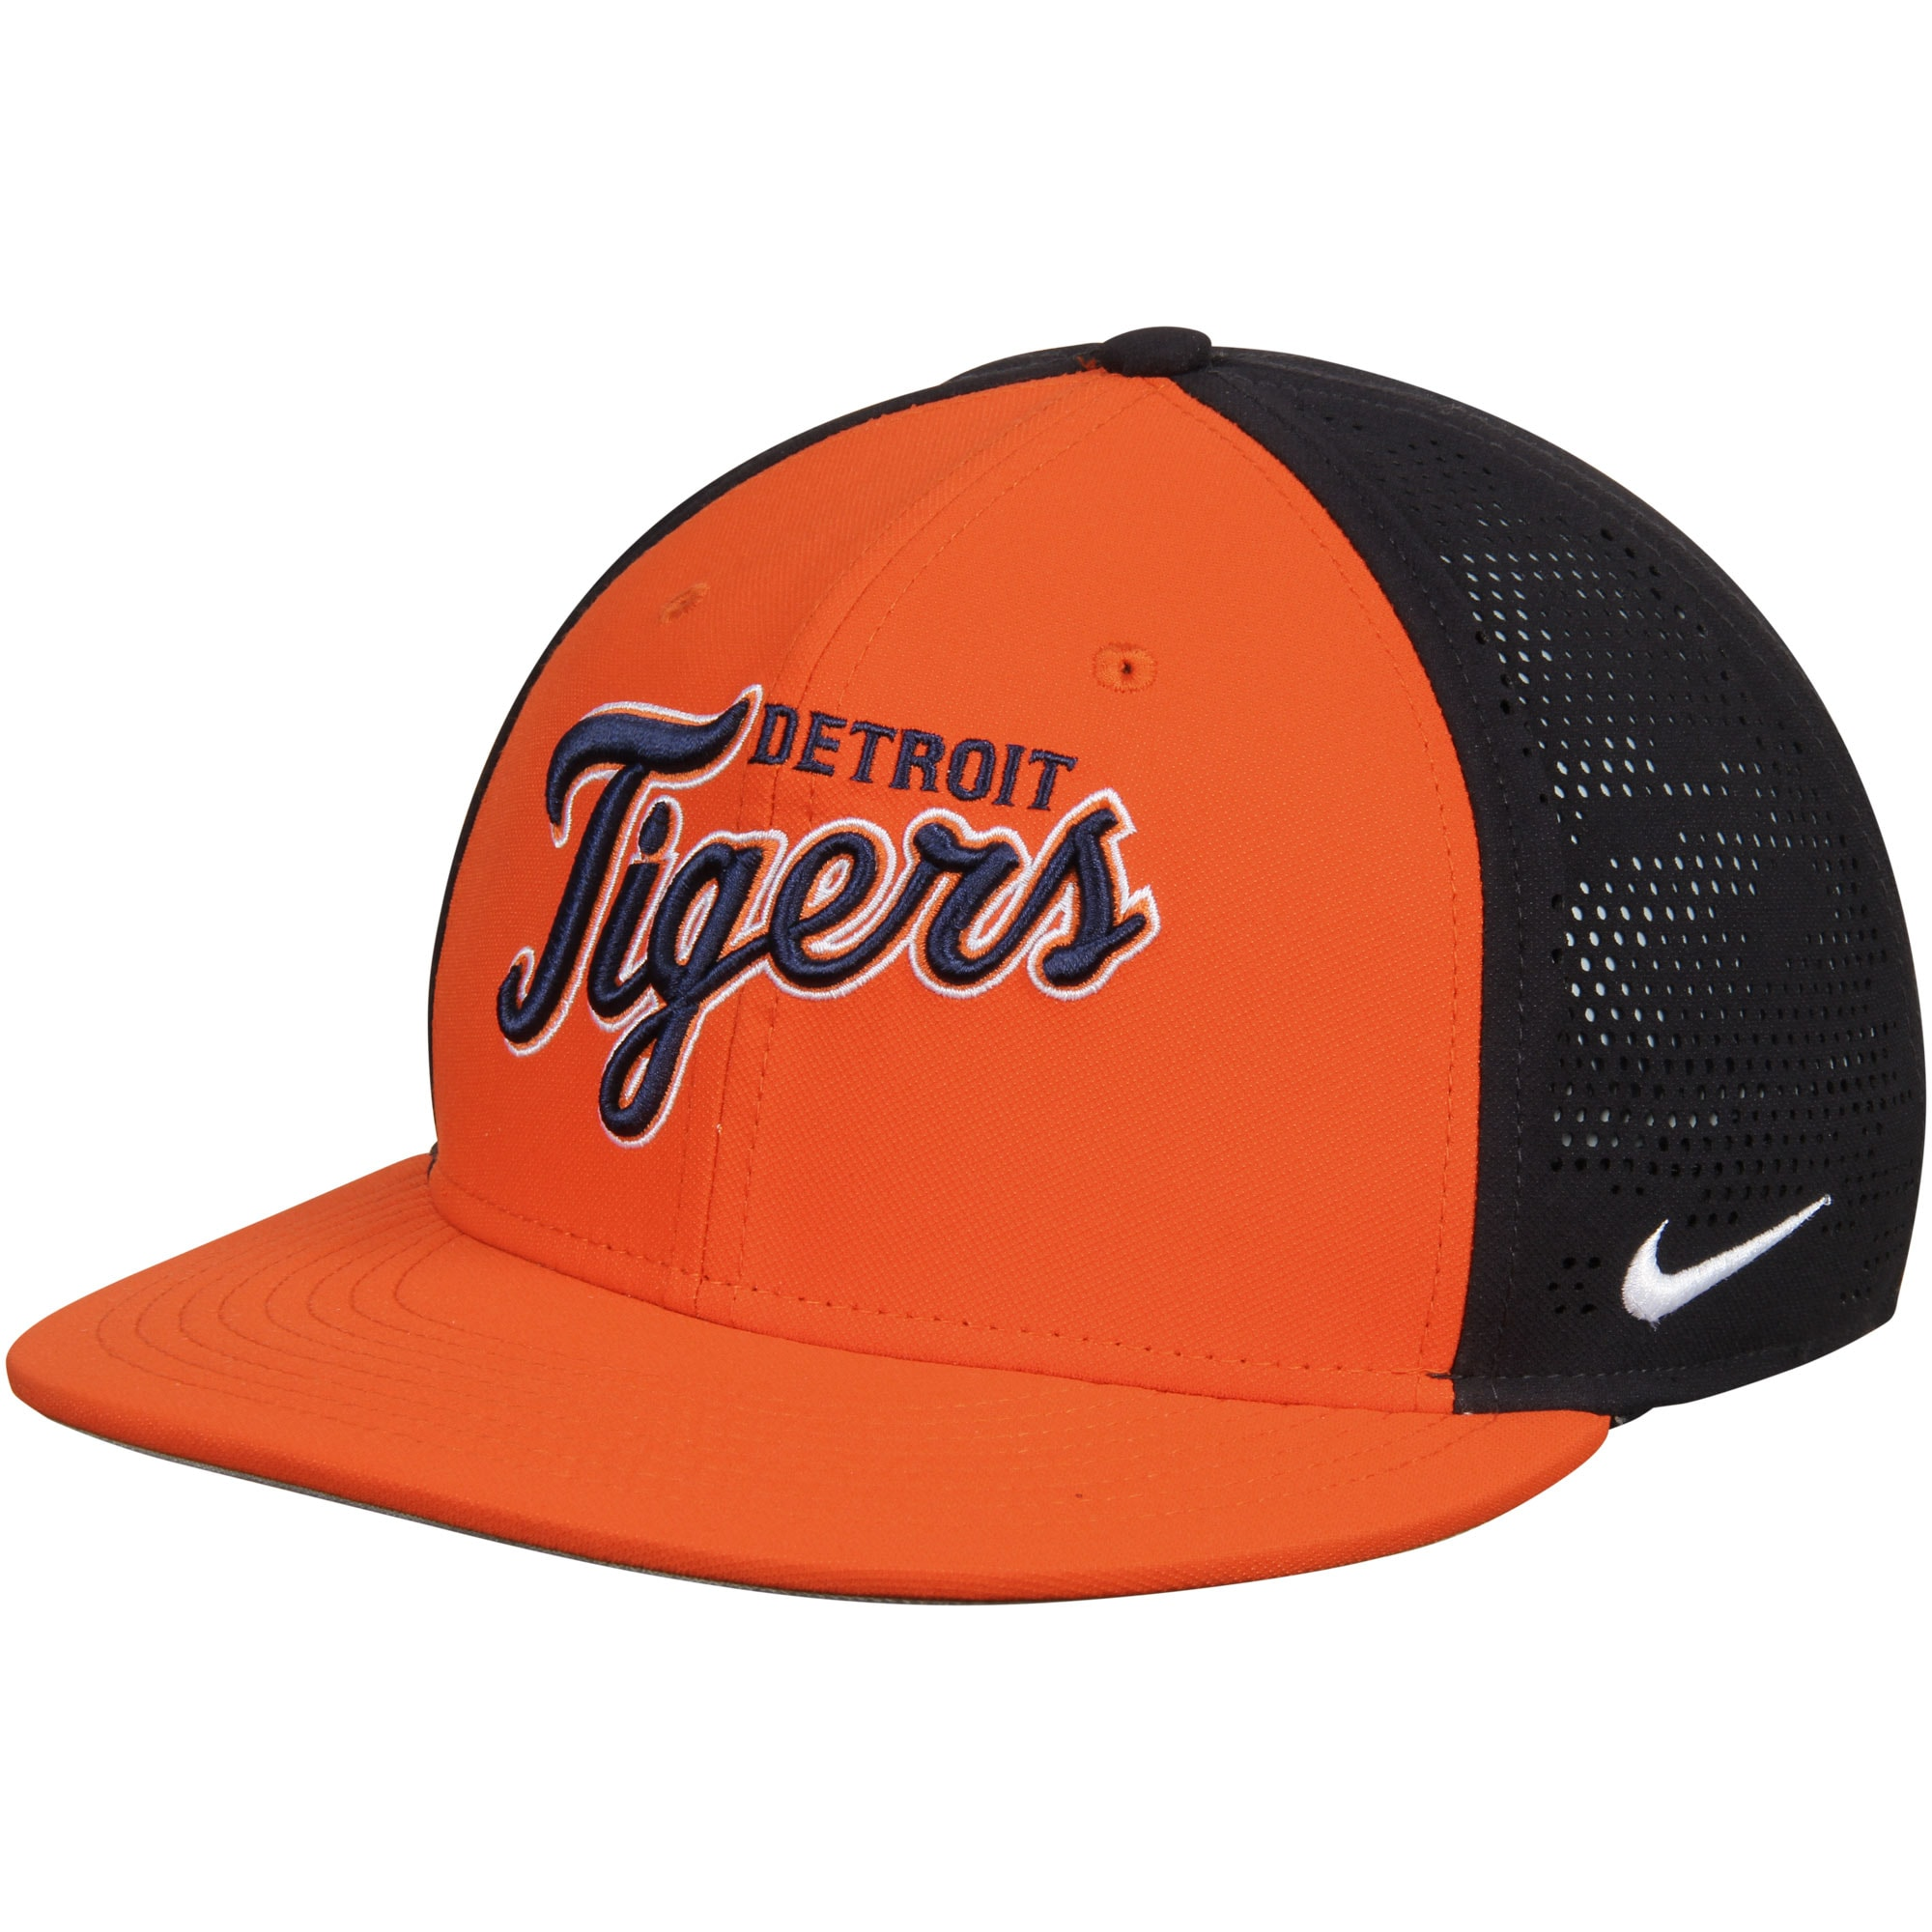 Detroit Tigers Nike True Vapor Swoosh Performance Flex Hat - Orange/Navy